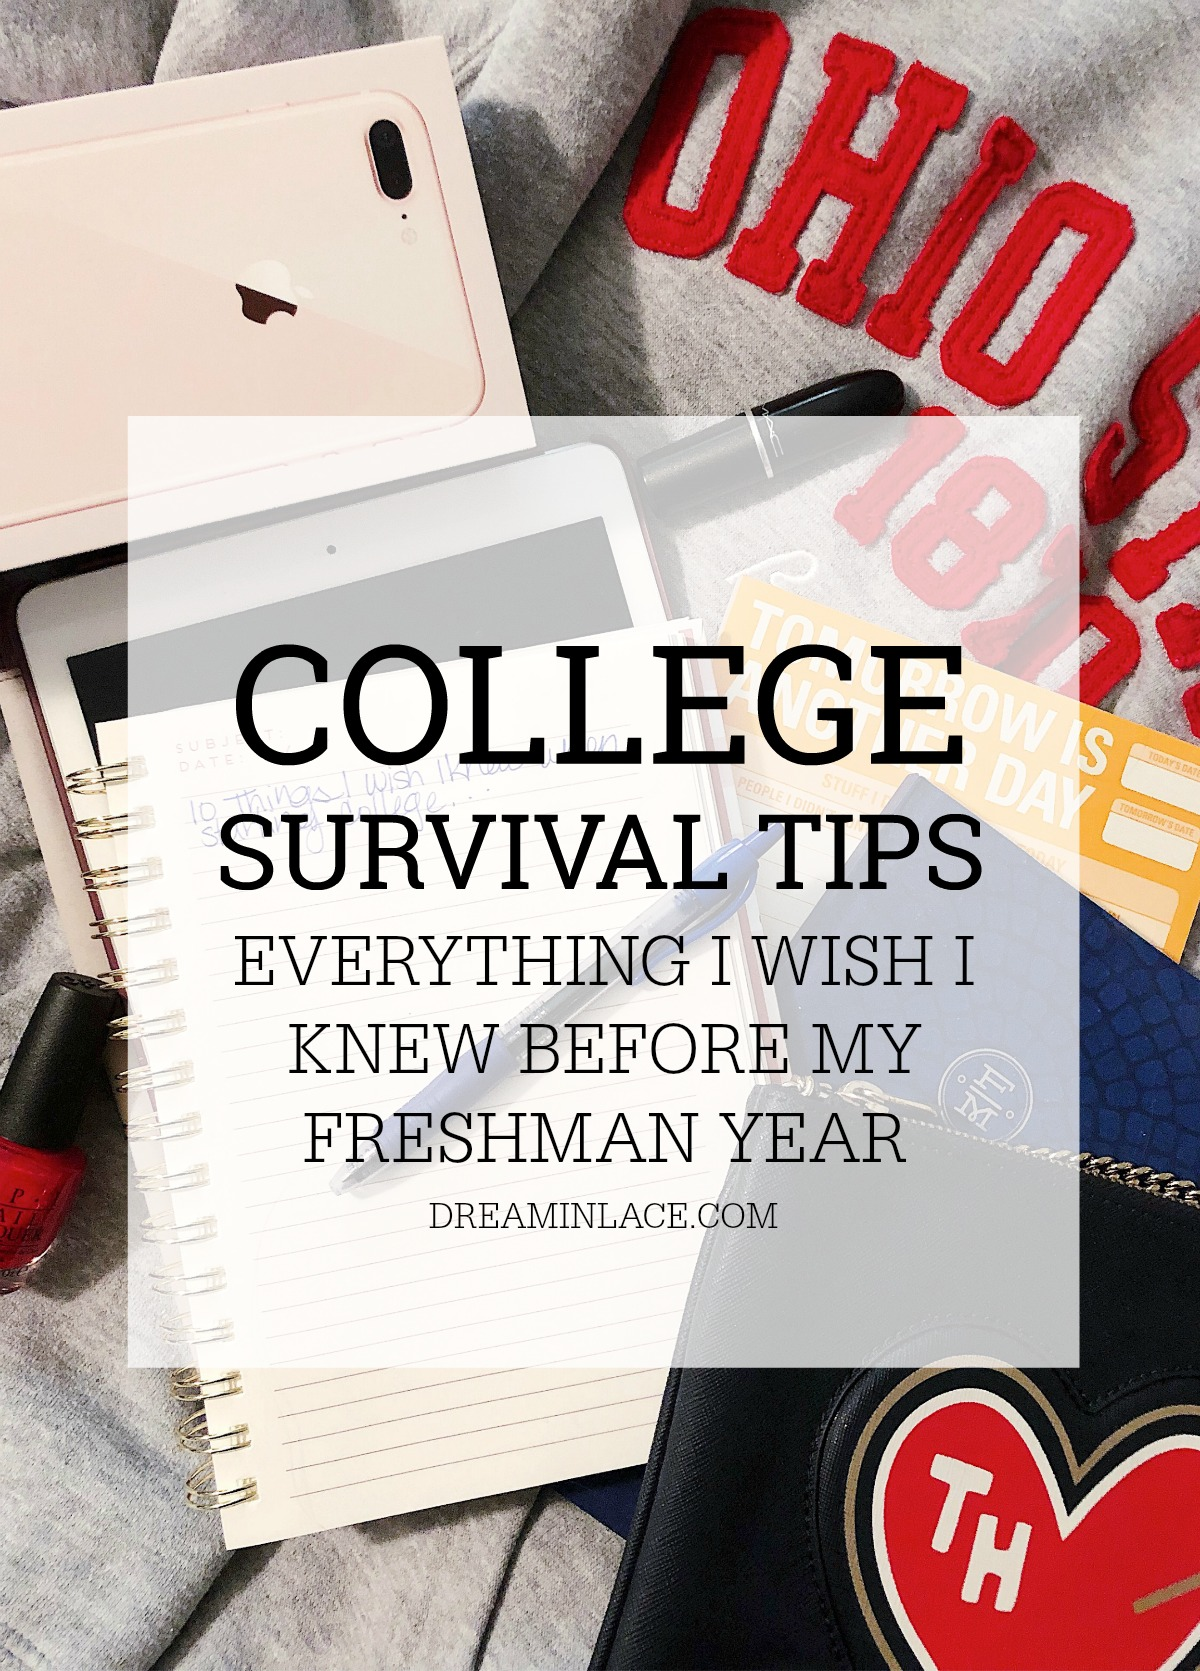 College Survival Tips I Everything I WISH I Knew When Starting College #BacktoSchool #CollegeBound #College #StudentLife #LifeHacks